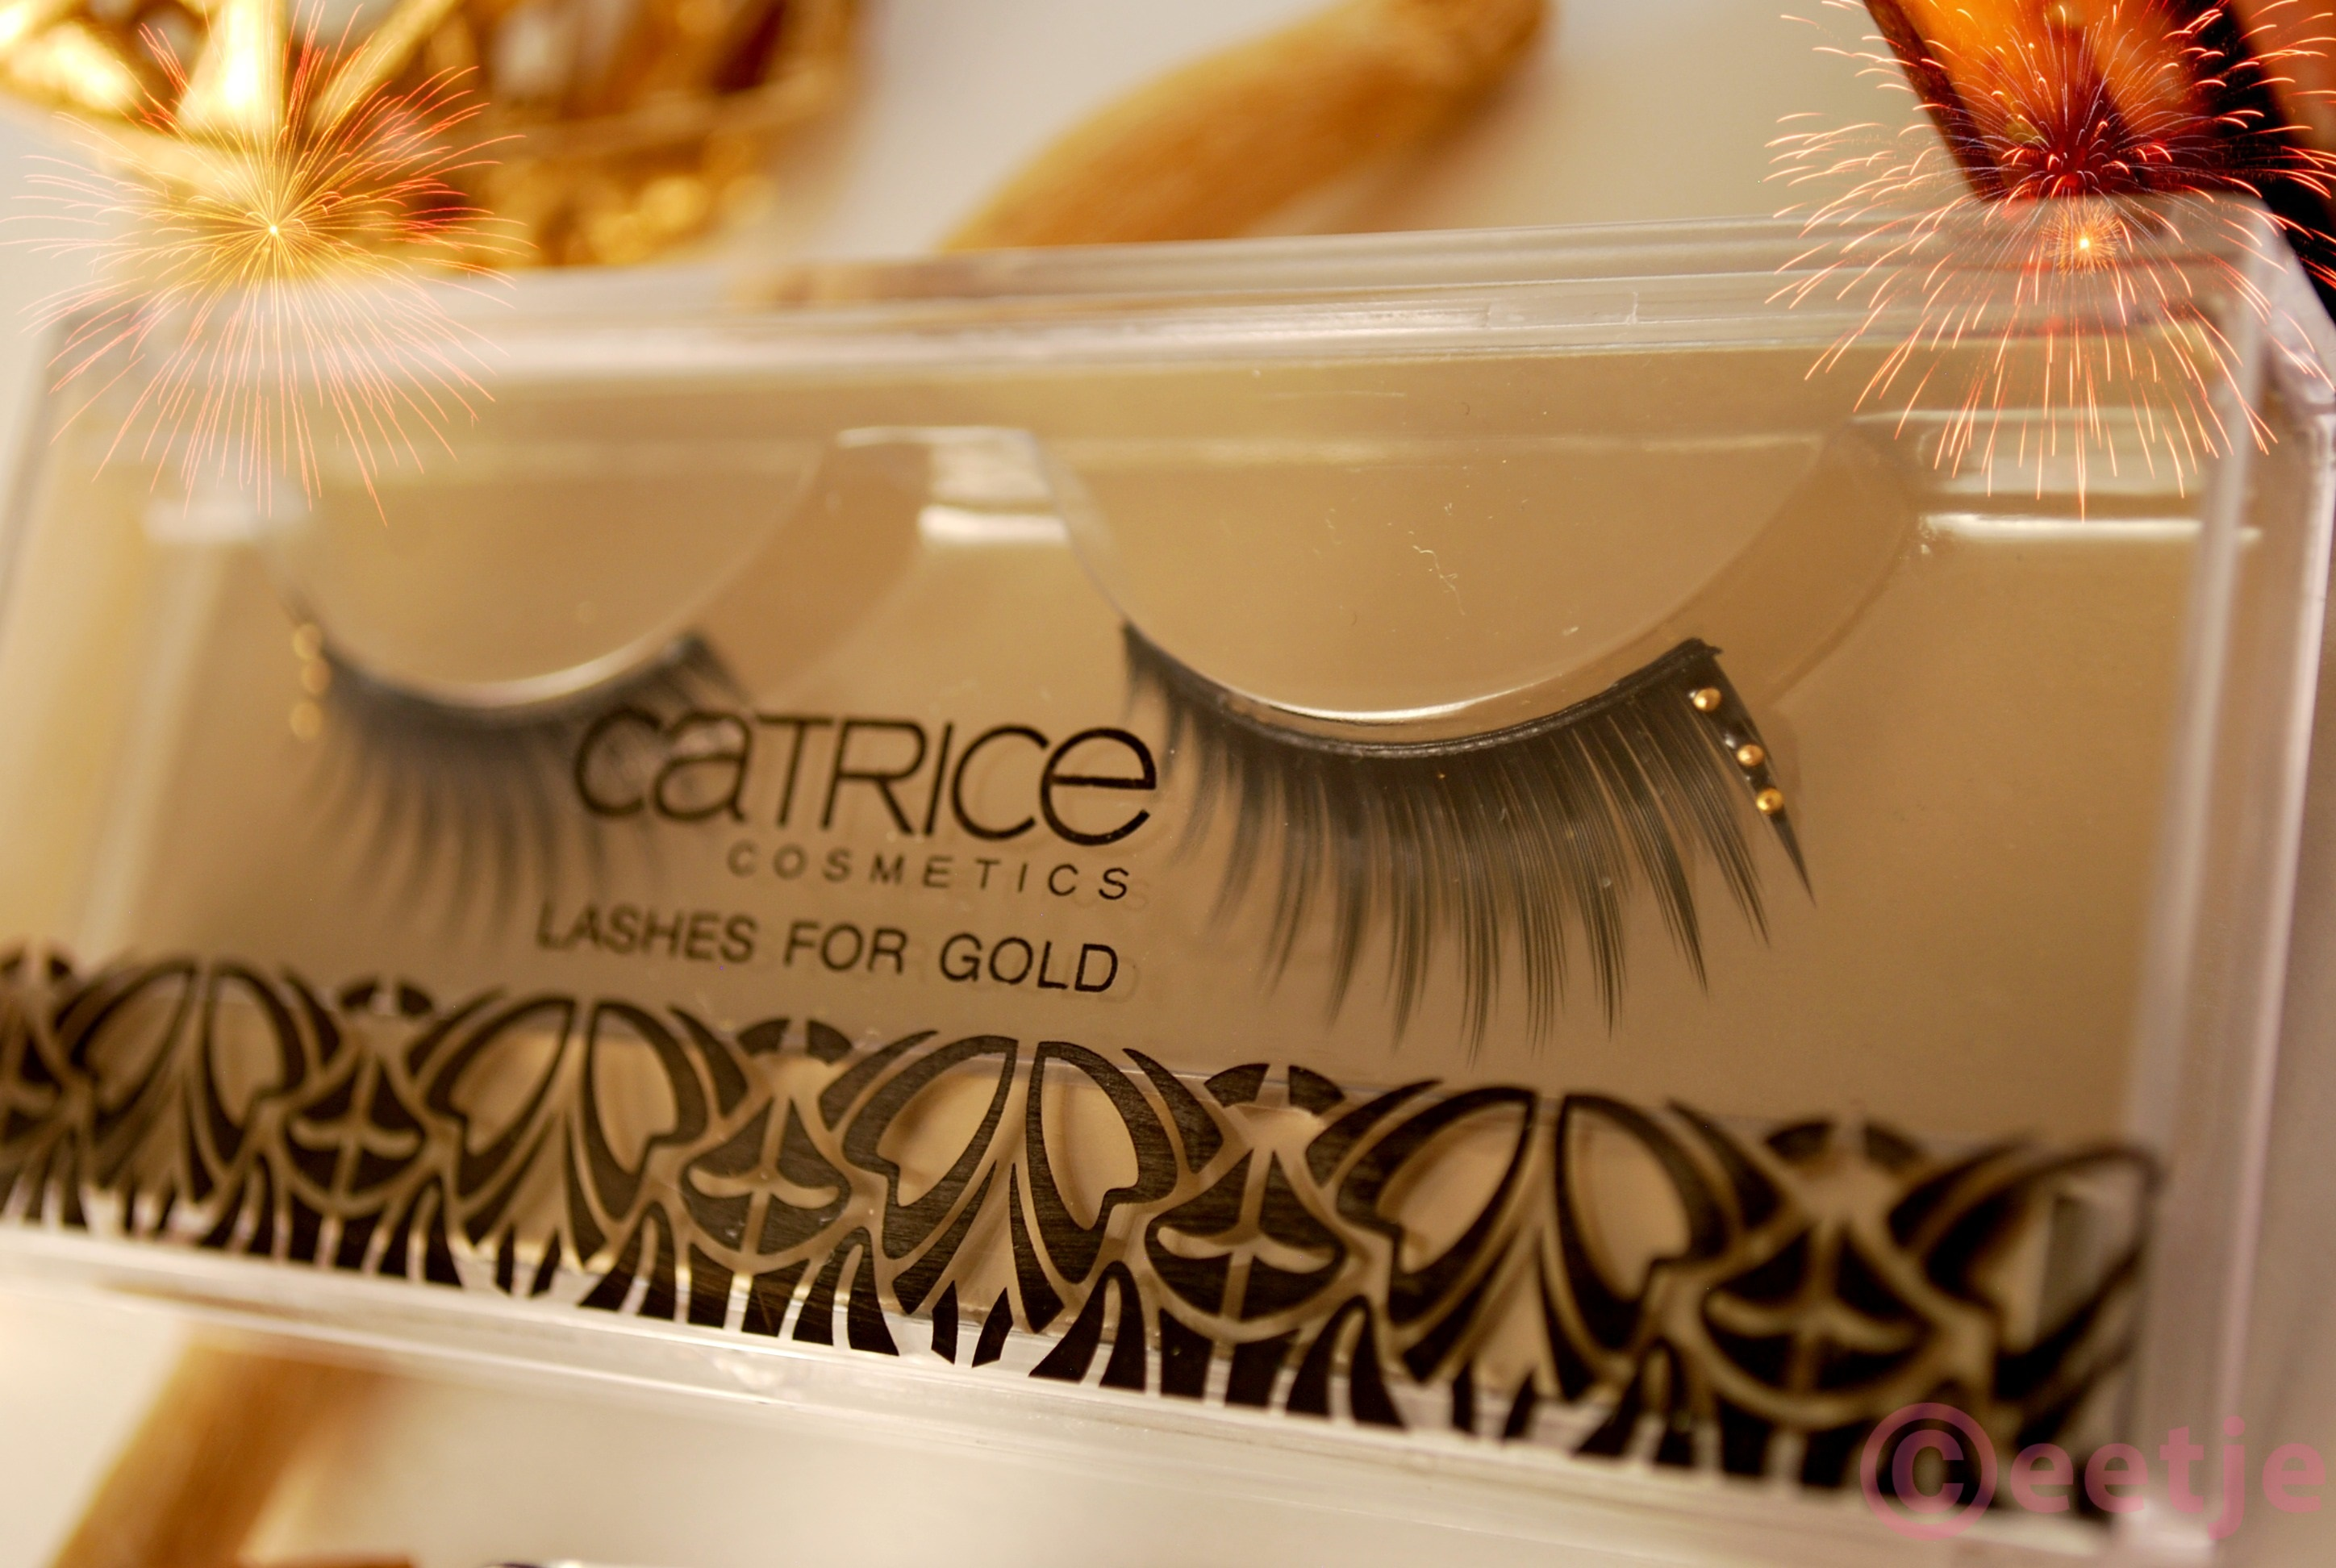 Catrice lashes for gold party look